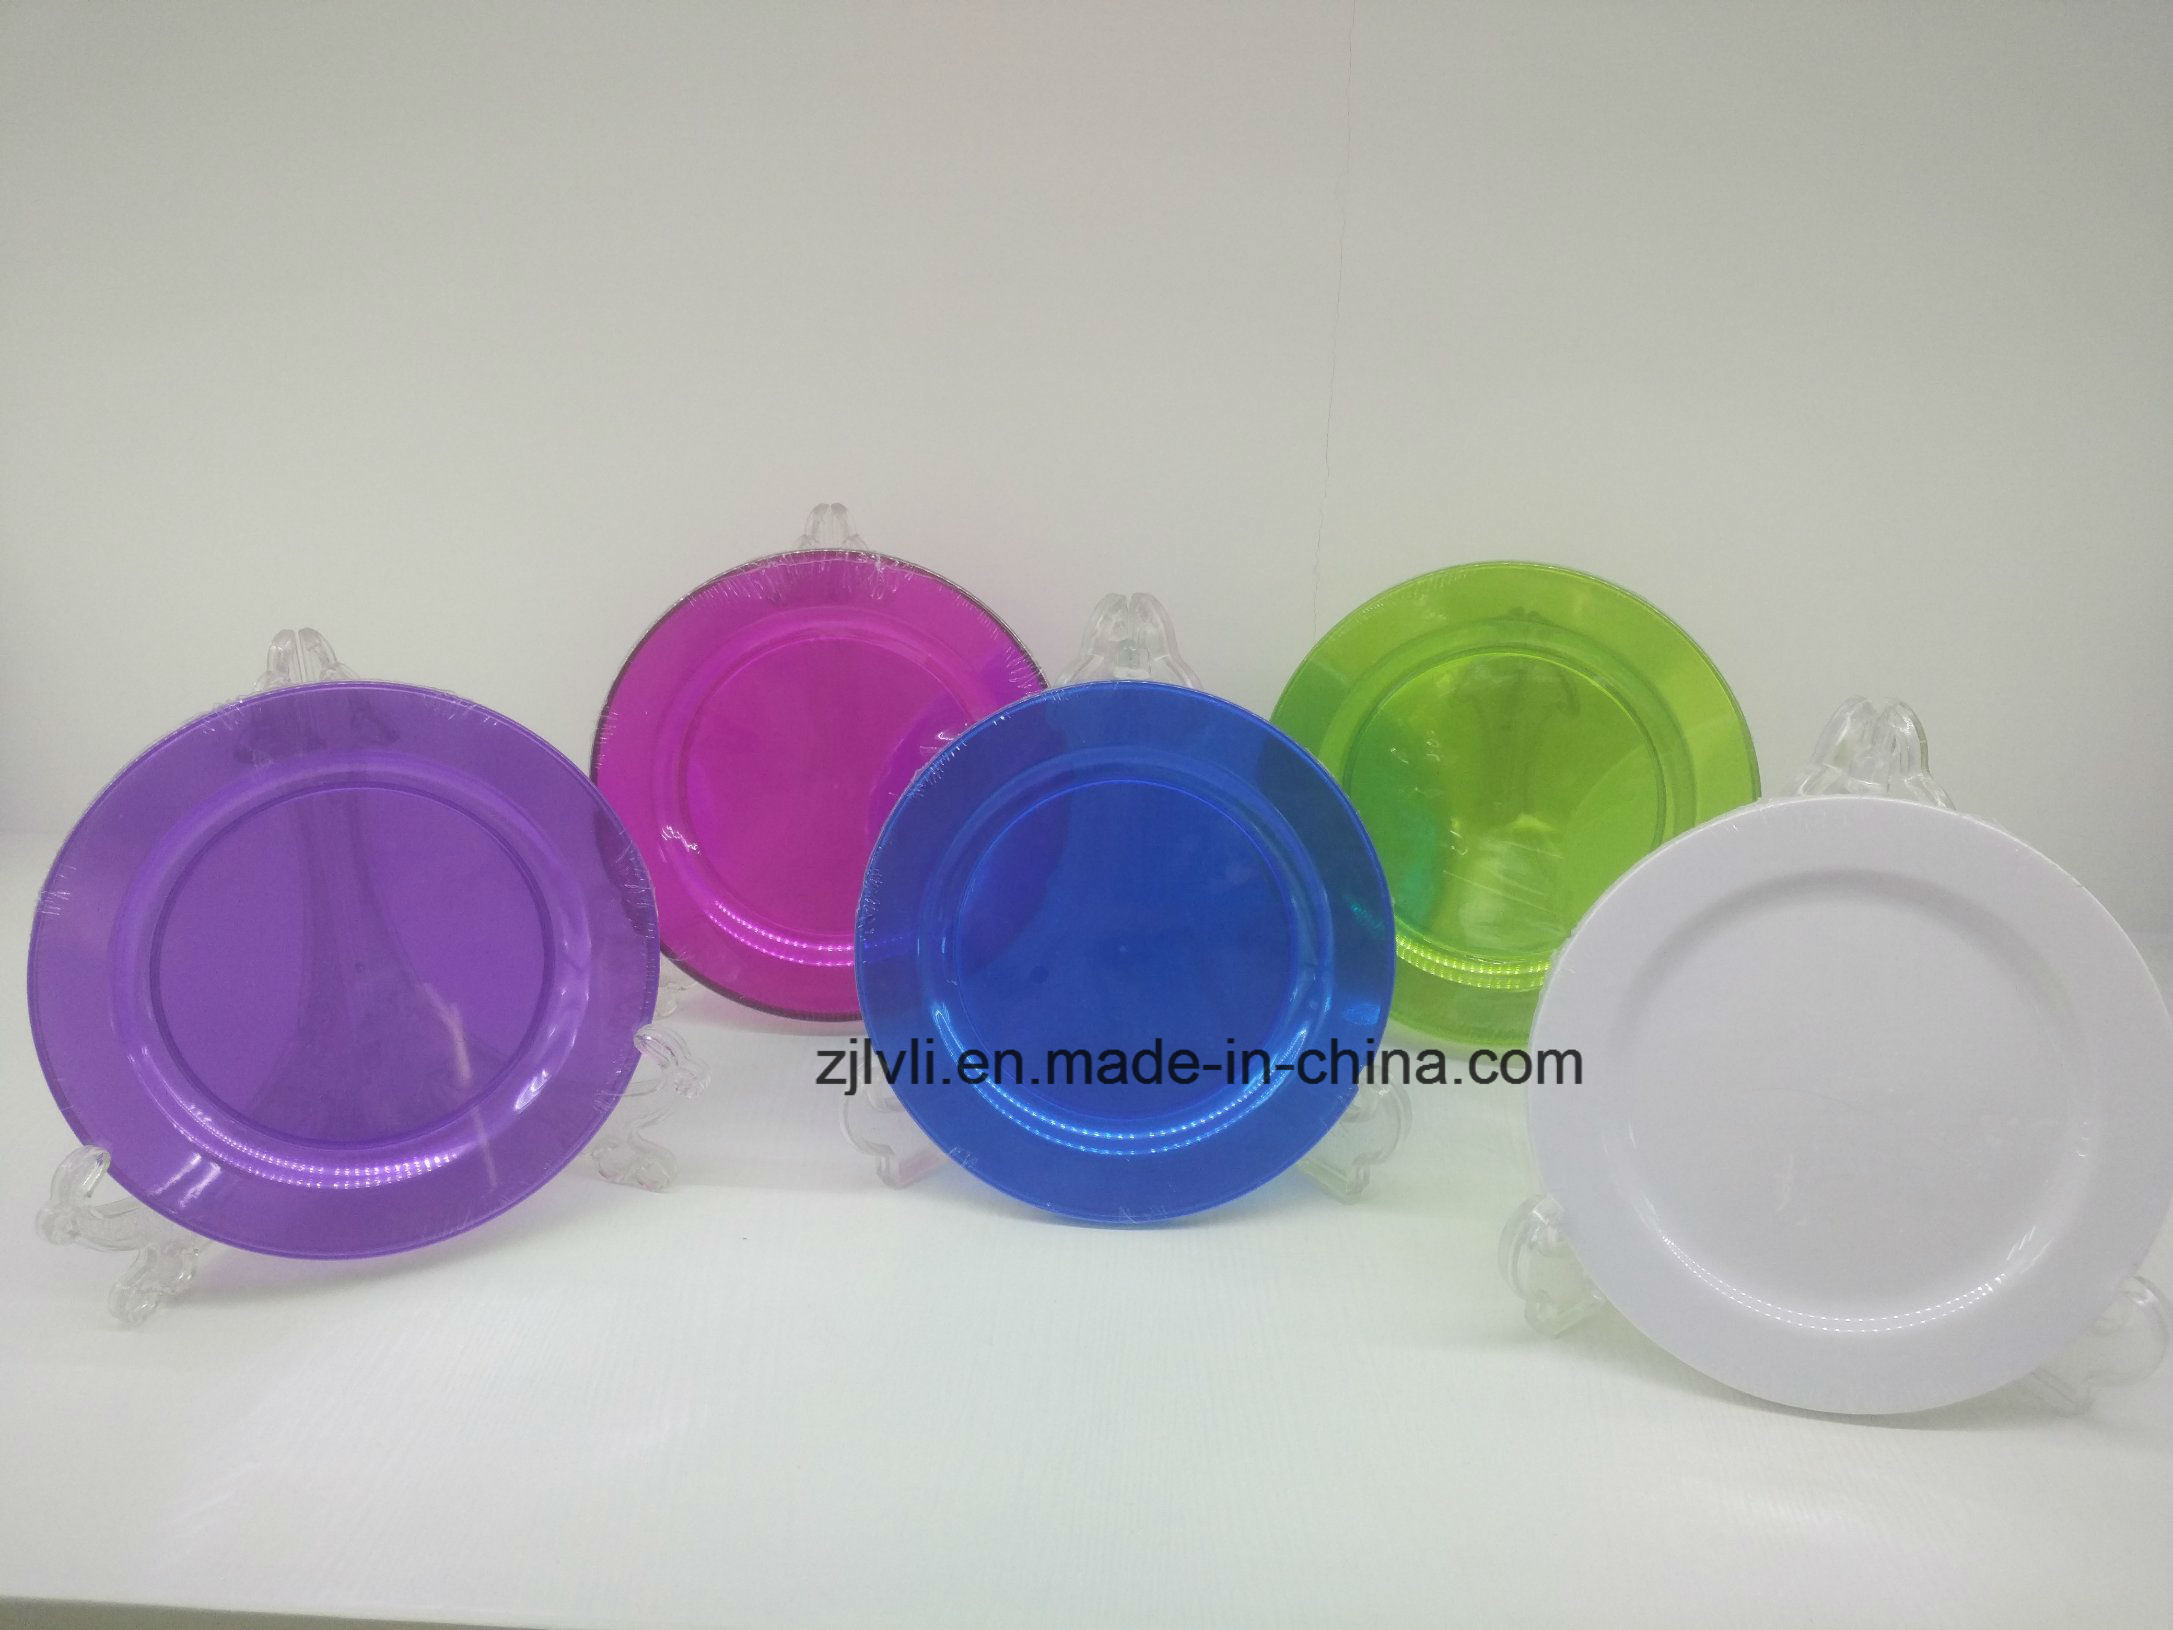 Plastic Plate, Disposable, Tableware, Tray, Dish, Colorful, PS, Clear, White, Plate, Transparent, PA-03